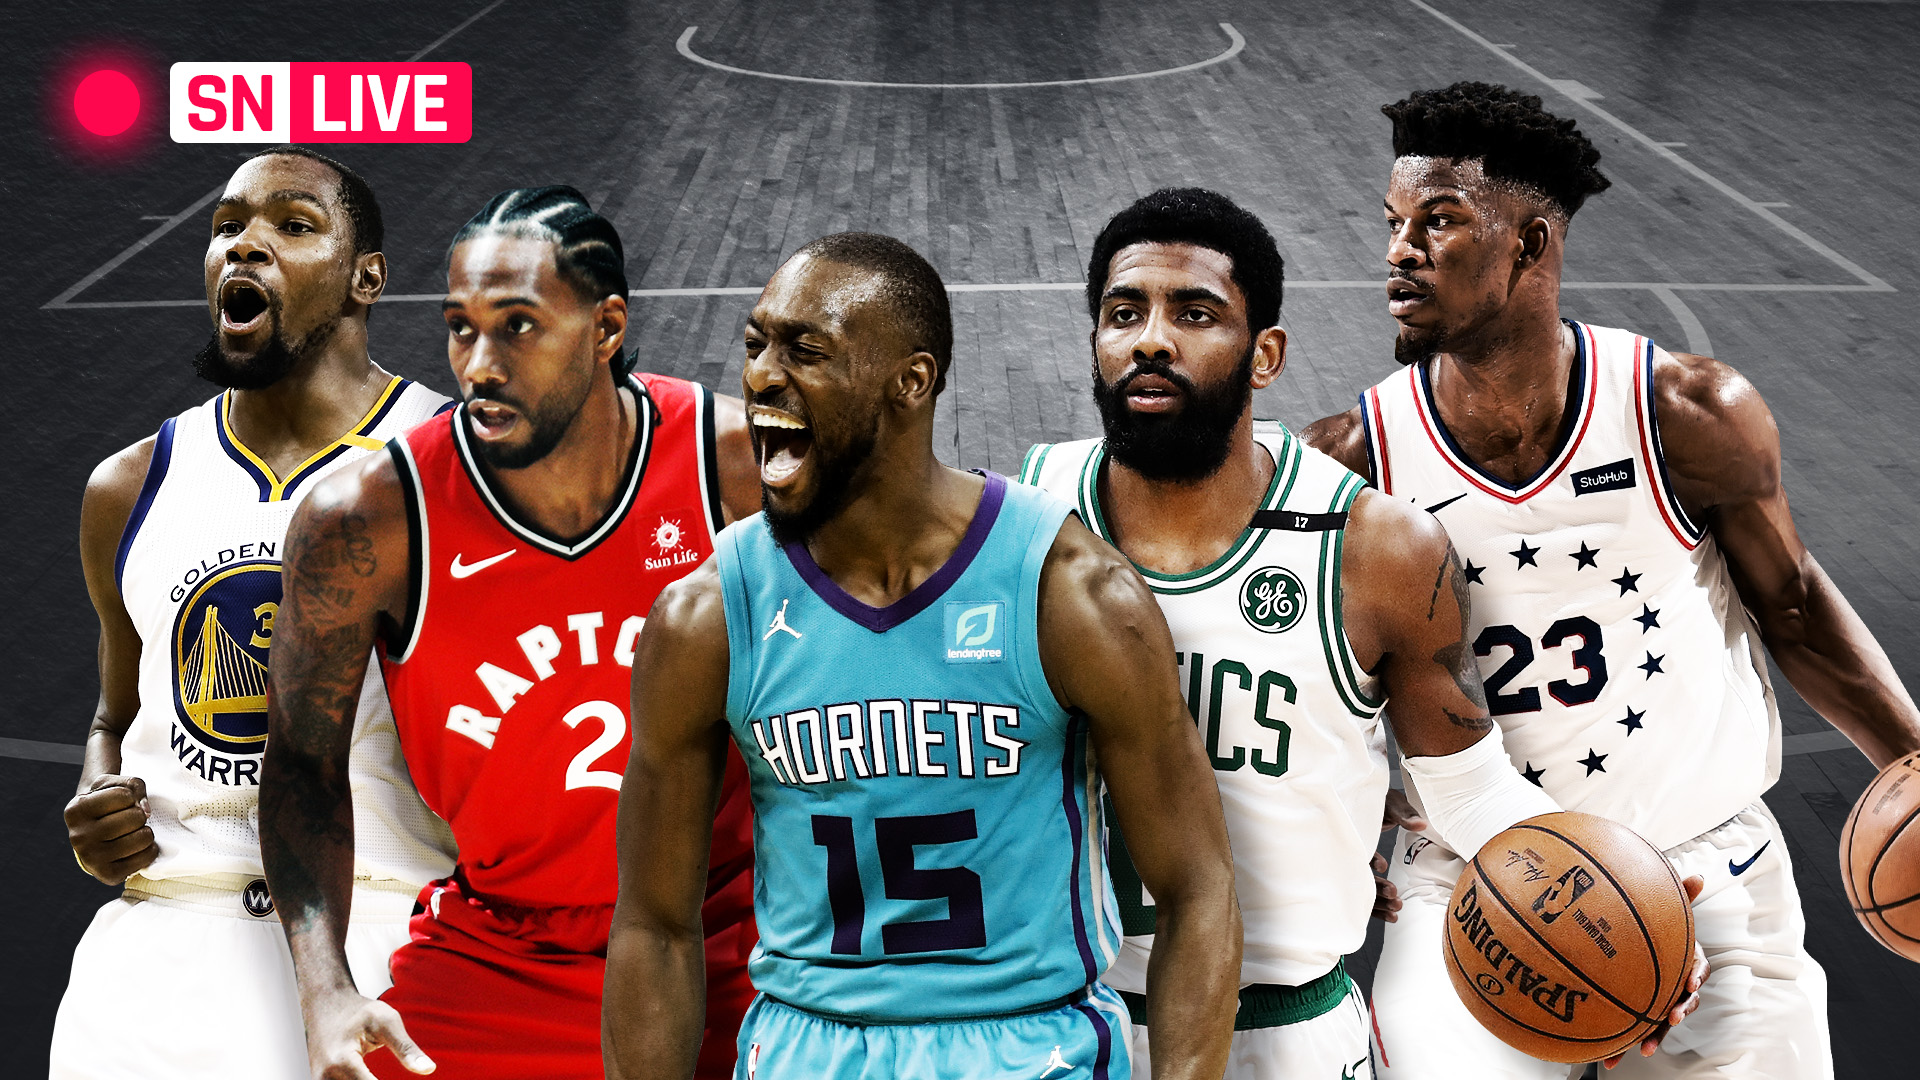 NBA free agency rumors 2019: Live updates, news on signings